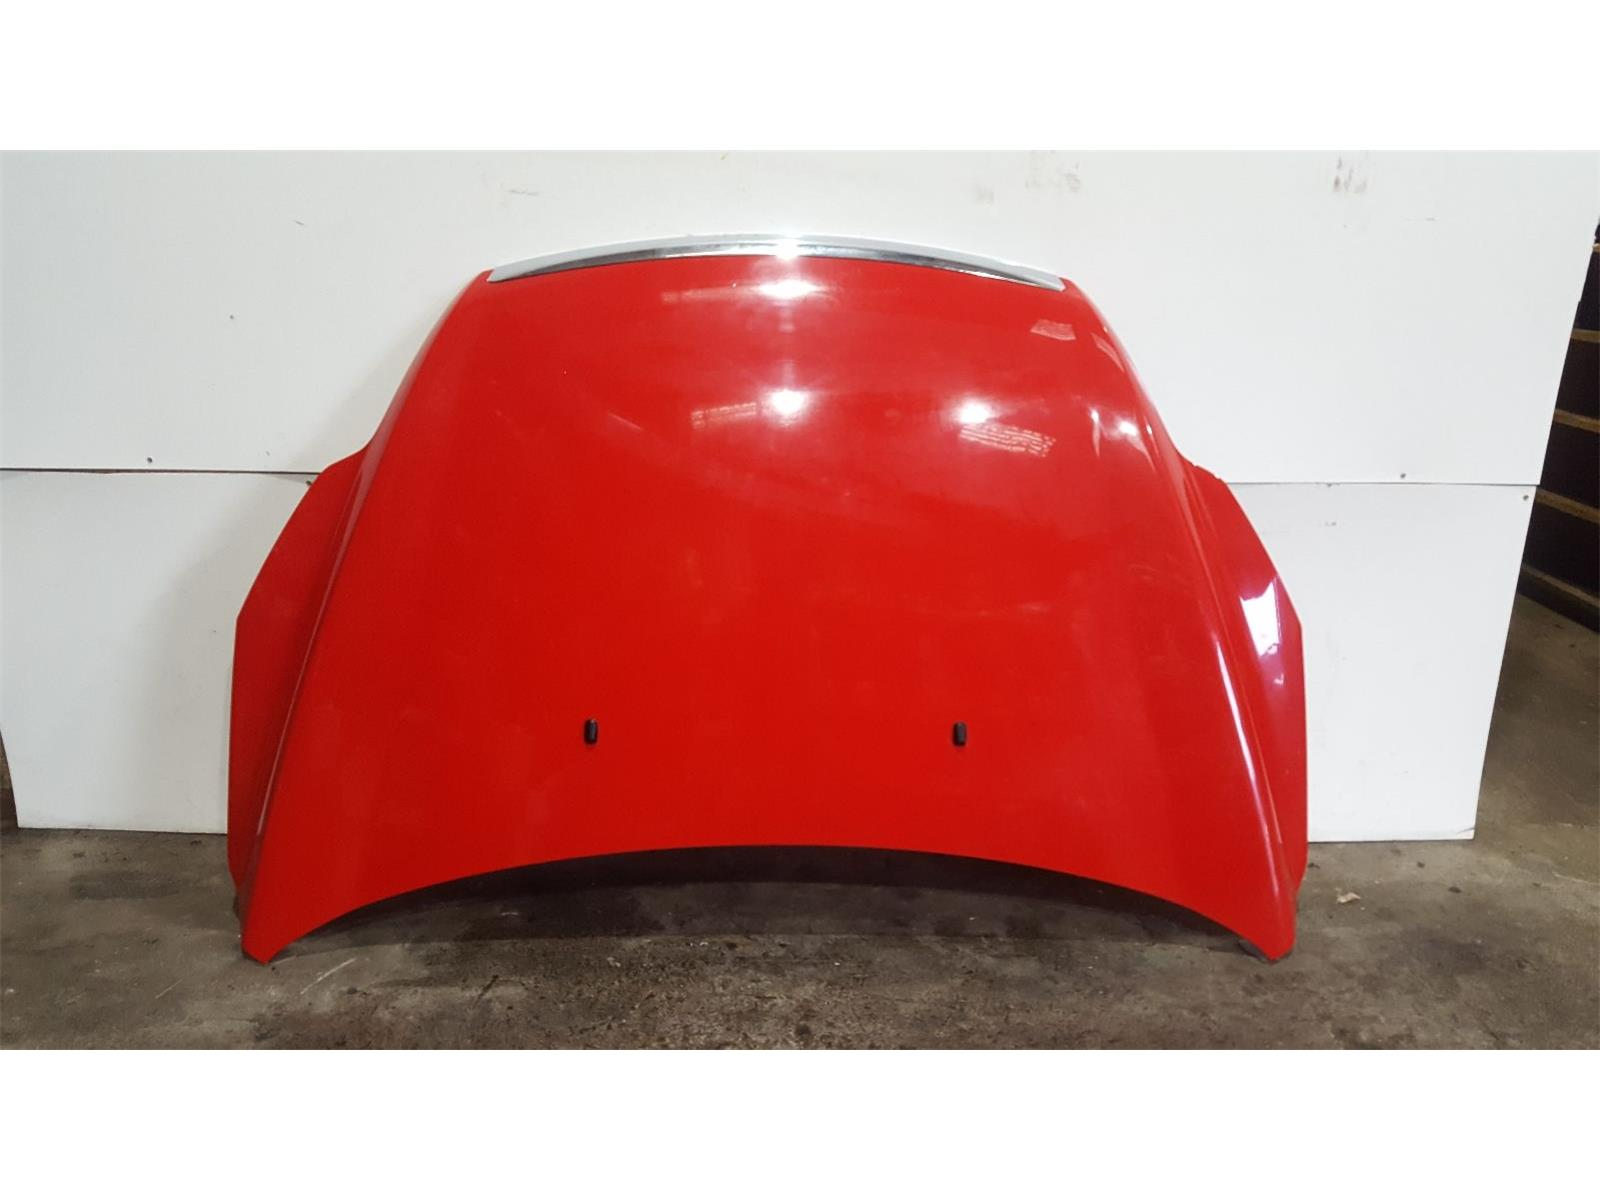 Ford Focus 2008 To 2010 Bonnet 2009 *will need respray*